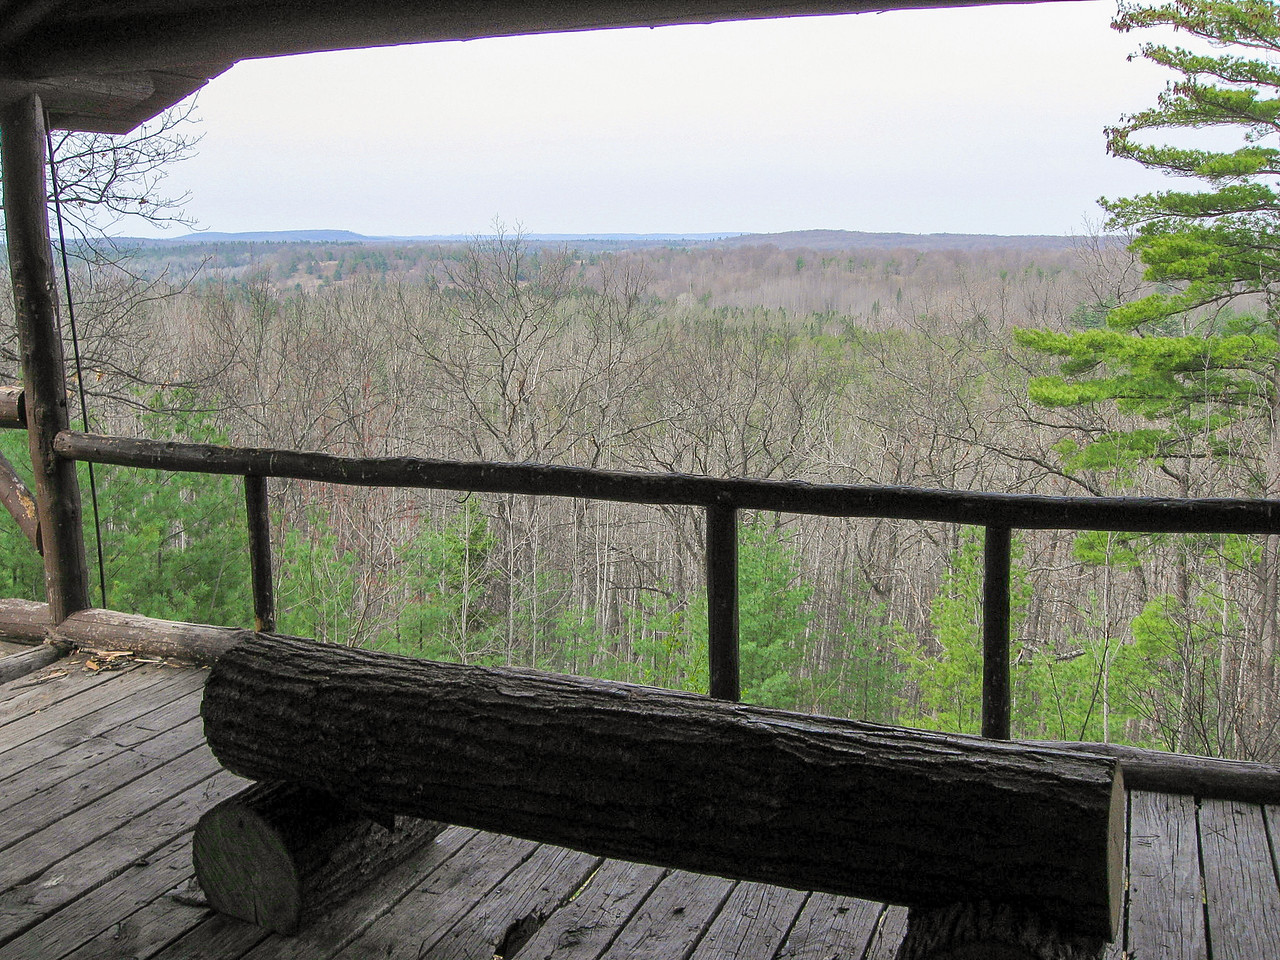 The view from the front porch would no doubt be more stunning on a clearer day...